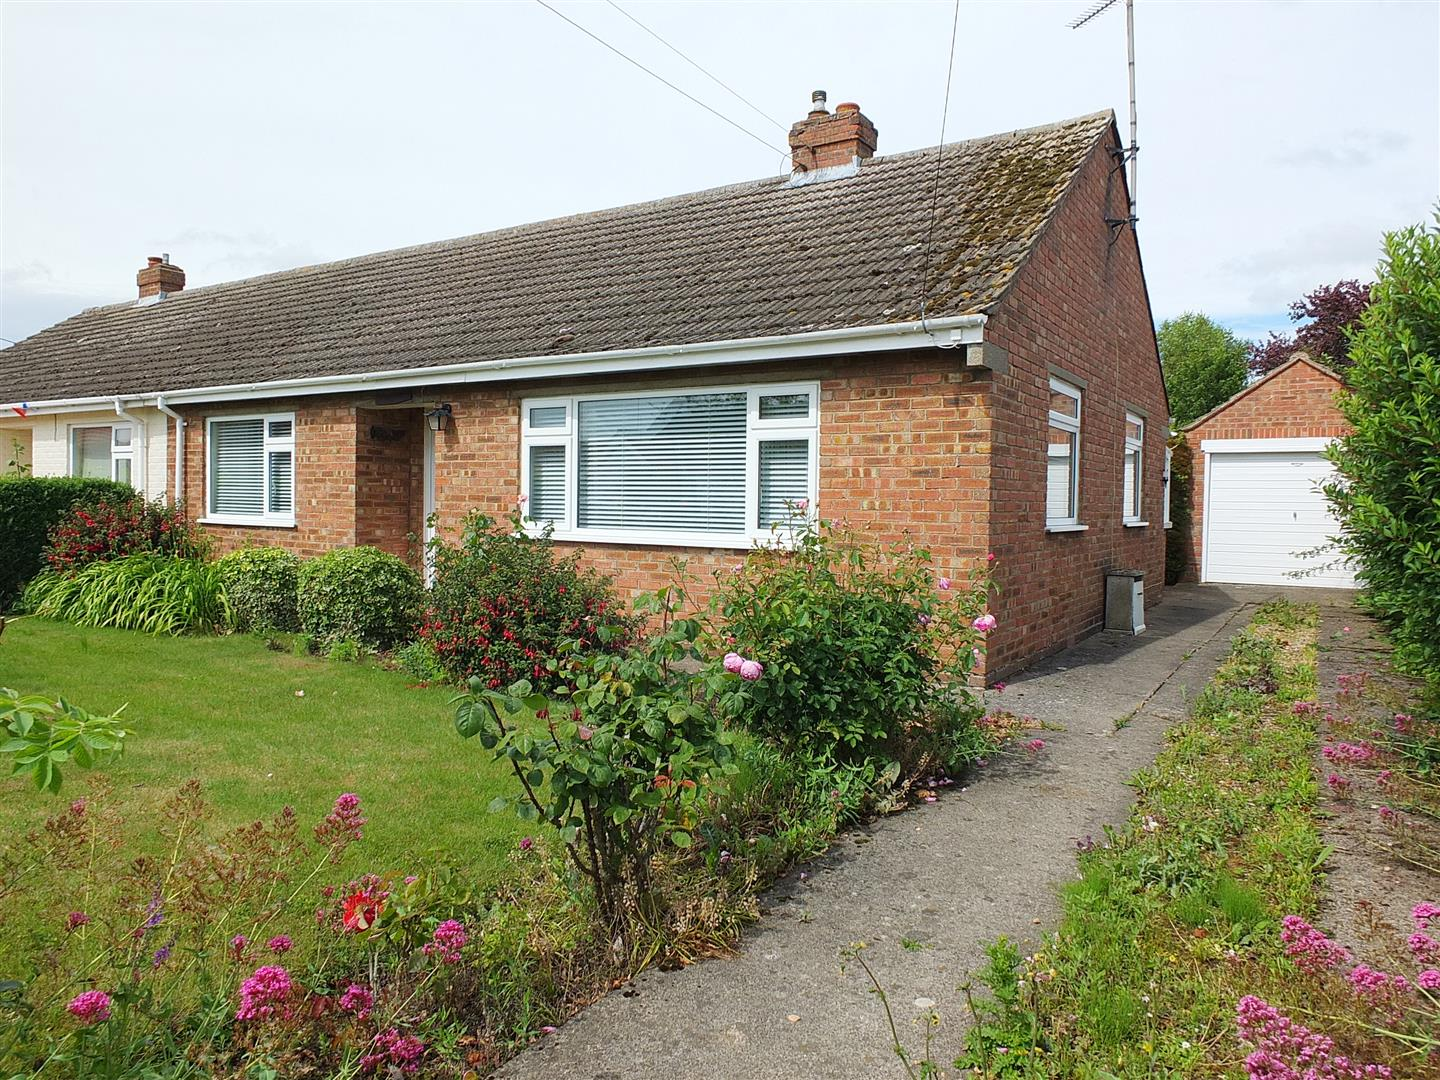 2 bed semi-detached bungalow for sale in Long Sutton Spalding, PE12 9BP  - Property Image 1